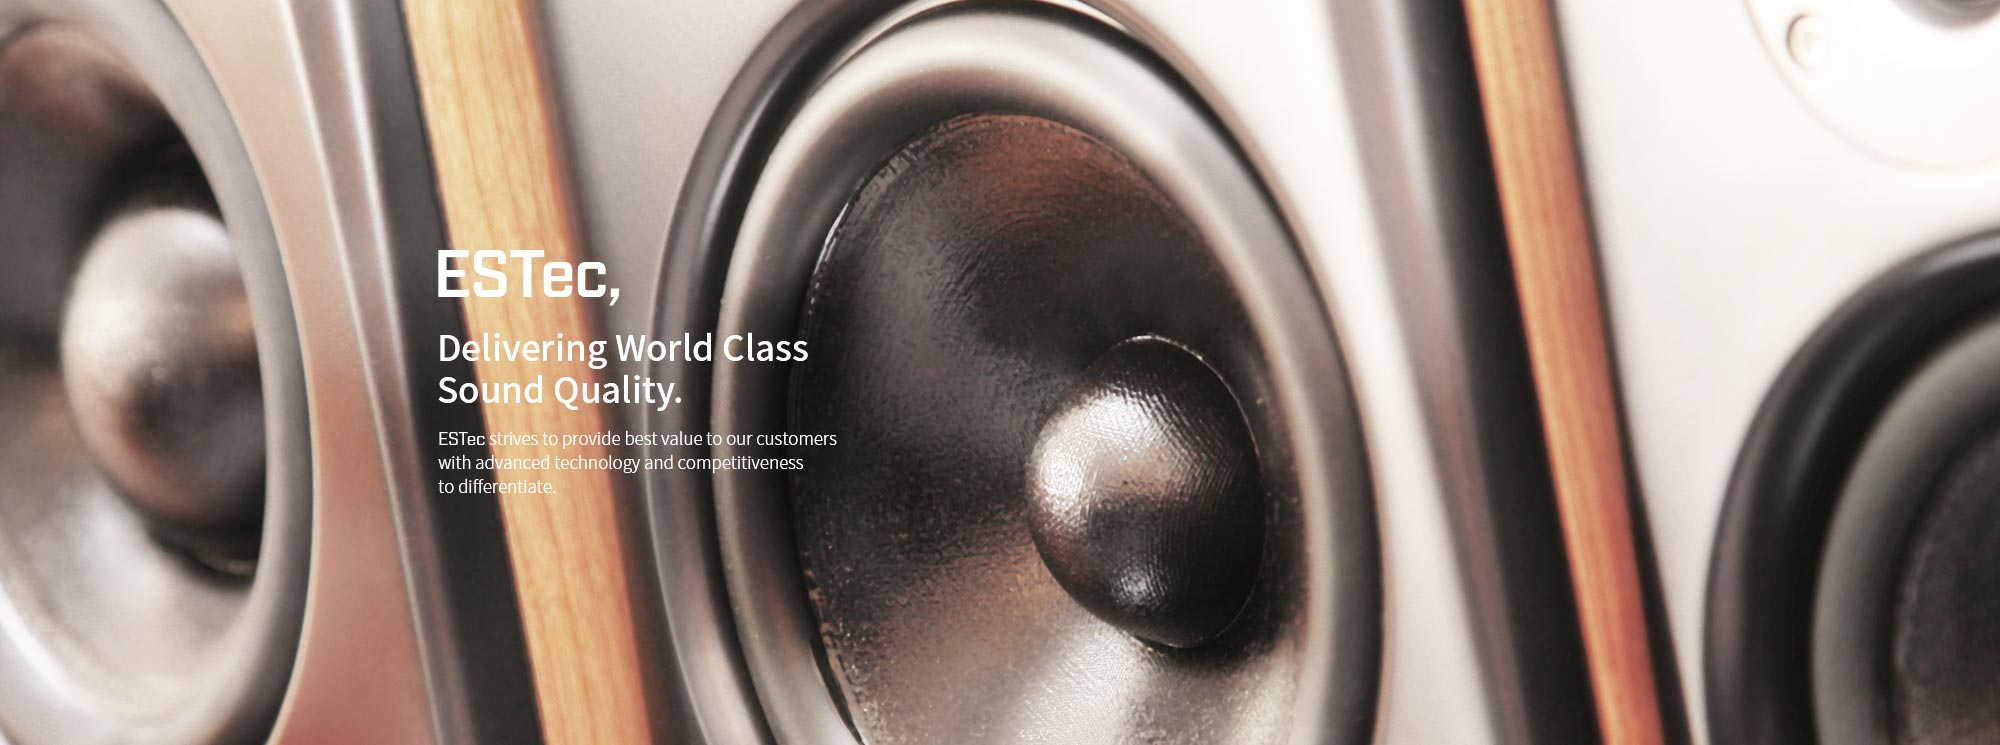 estec,Delivering World Class Sound Quality. estec strives to provide best value to our customers  with advanced technology and competitiveness to differetiate.